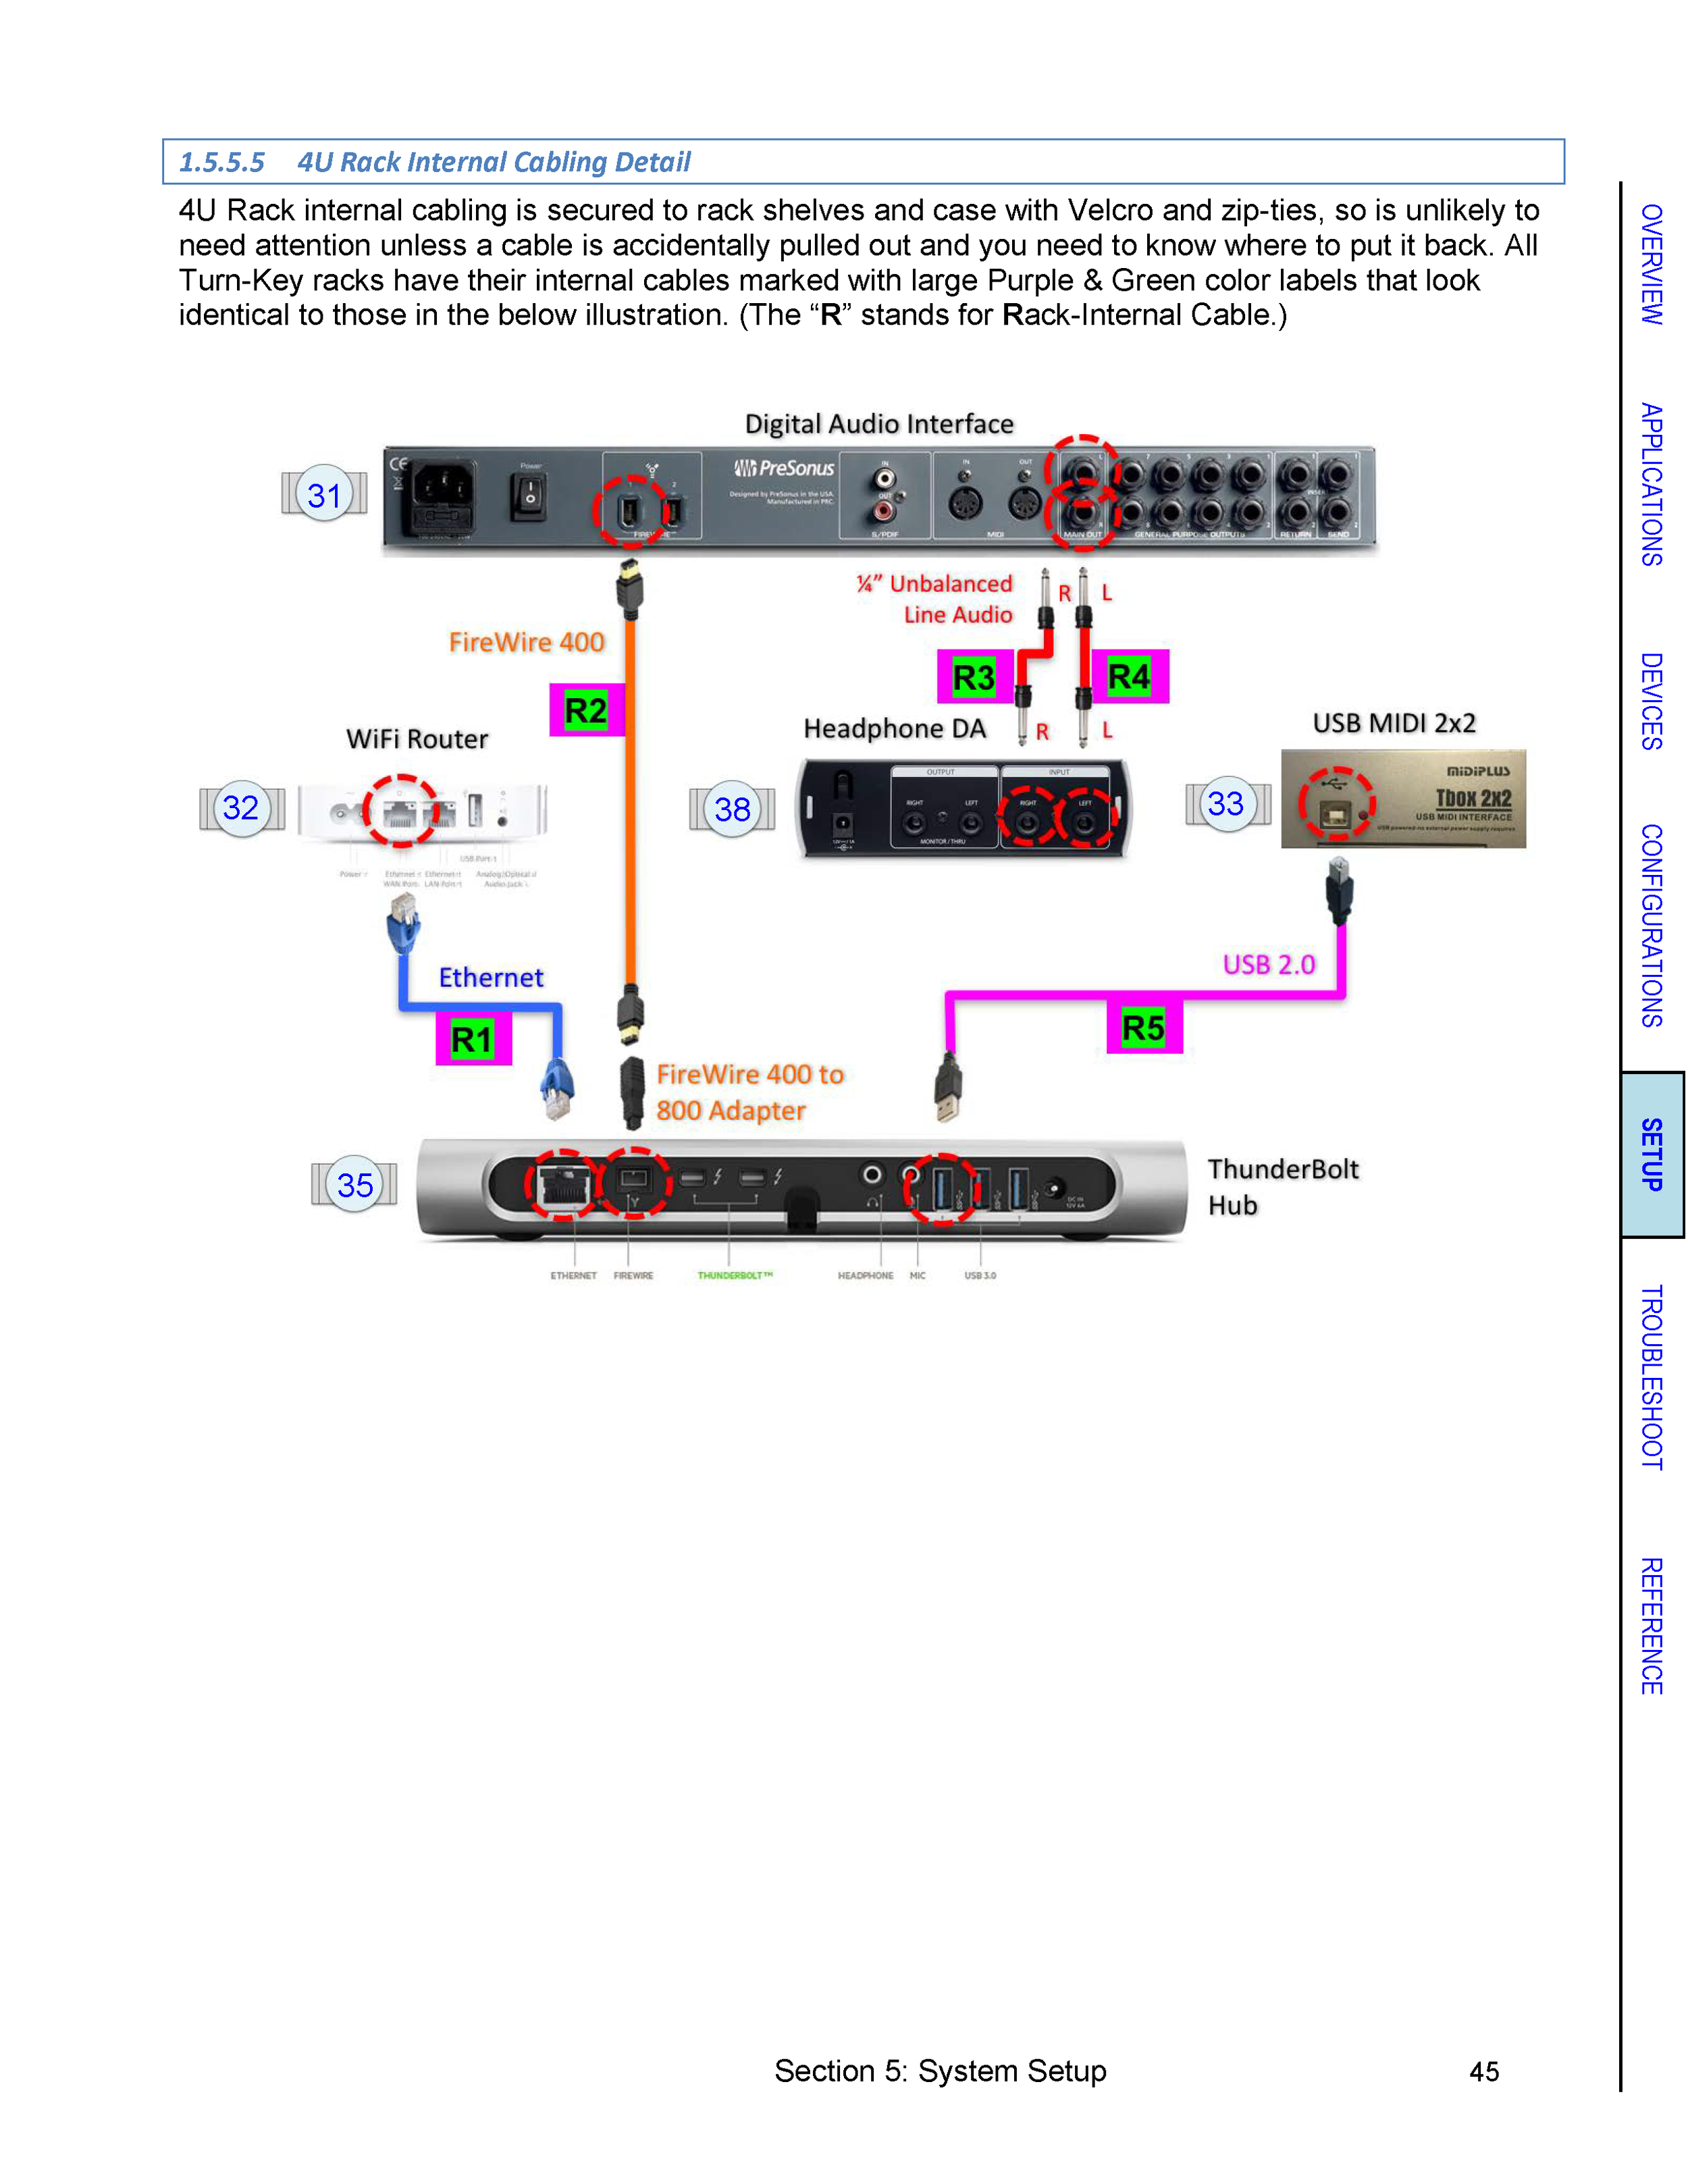 SpaceHarp_Systems_User_Guide_Oct-9th-2017_released_Page_45.png